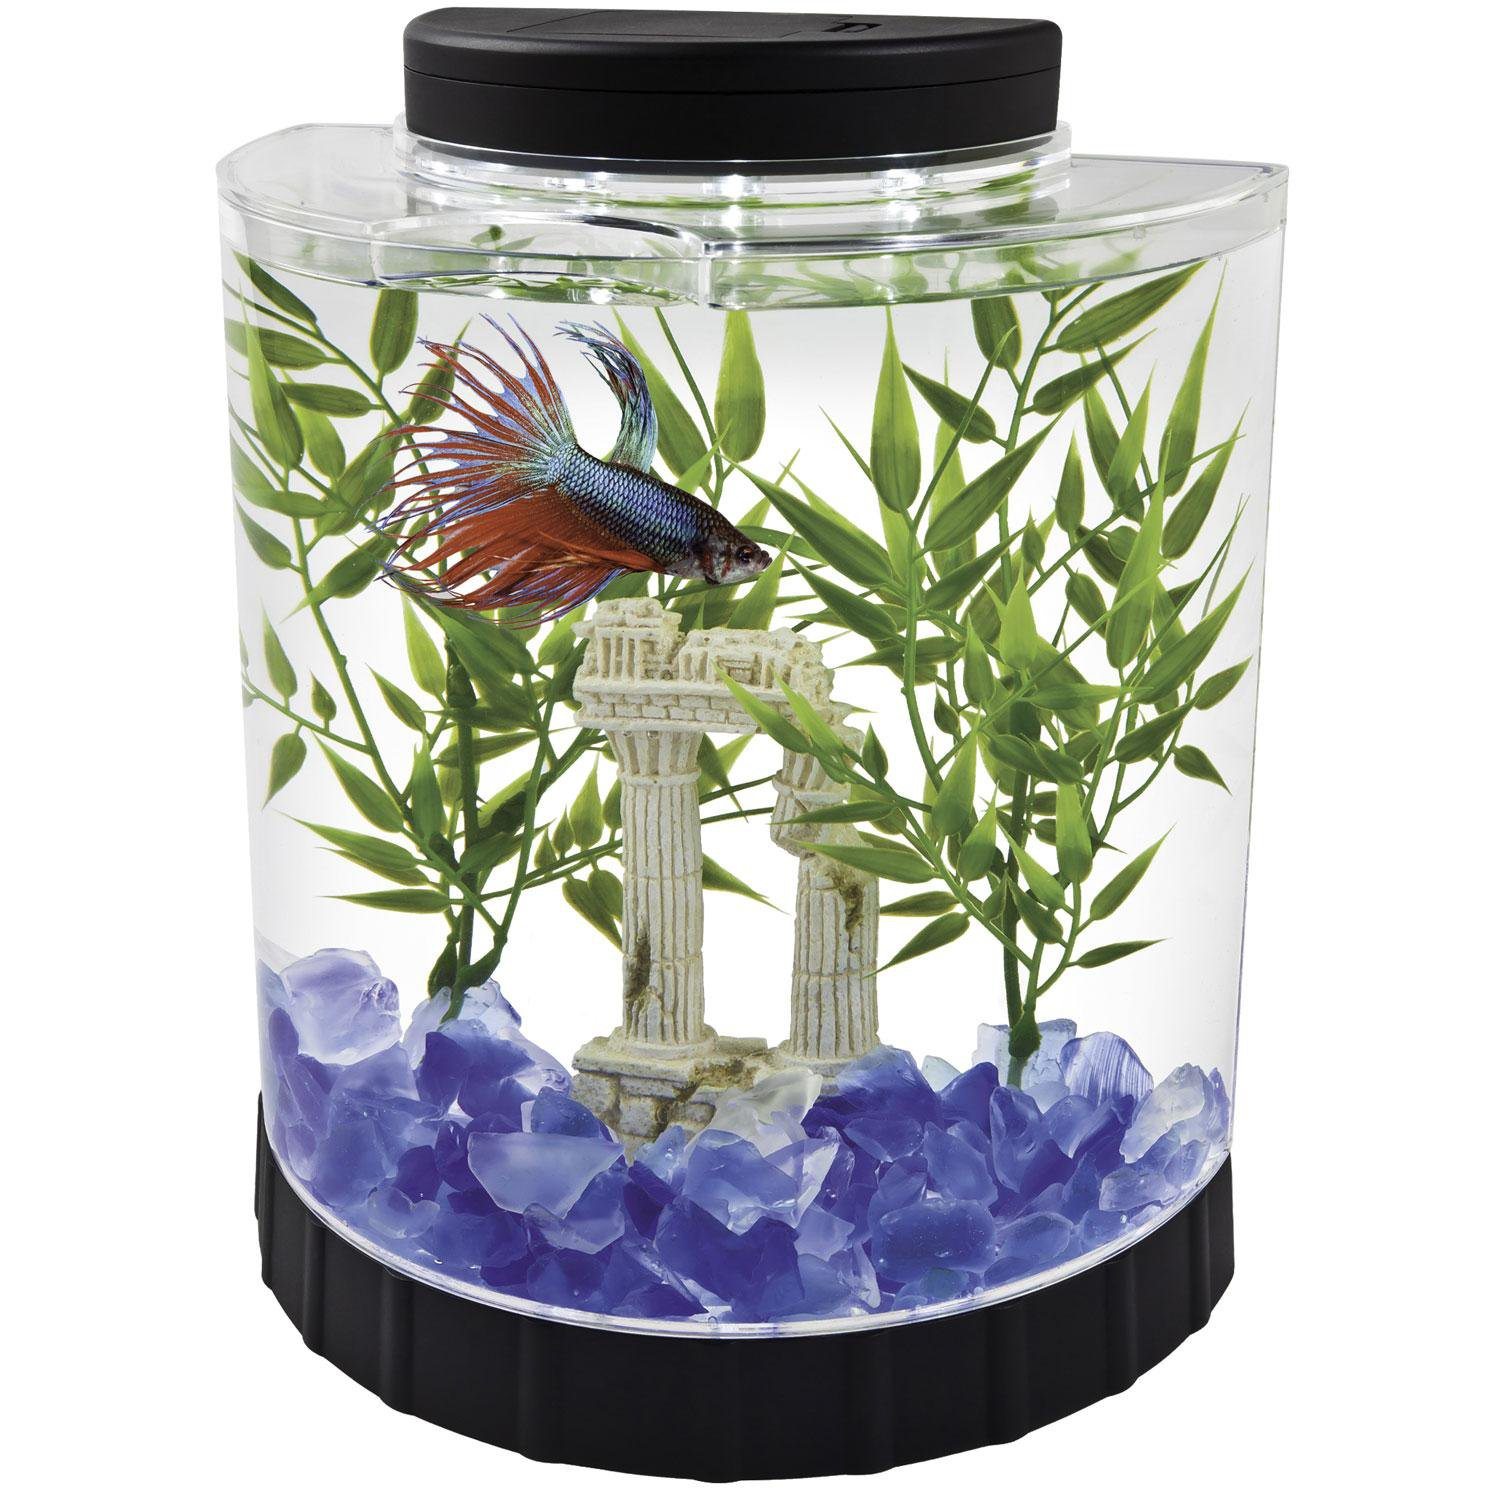 Fish aquarium tanks for sale - Tetra 1 Gallon Led Half Moon Betta Kit